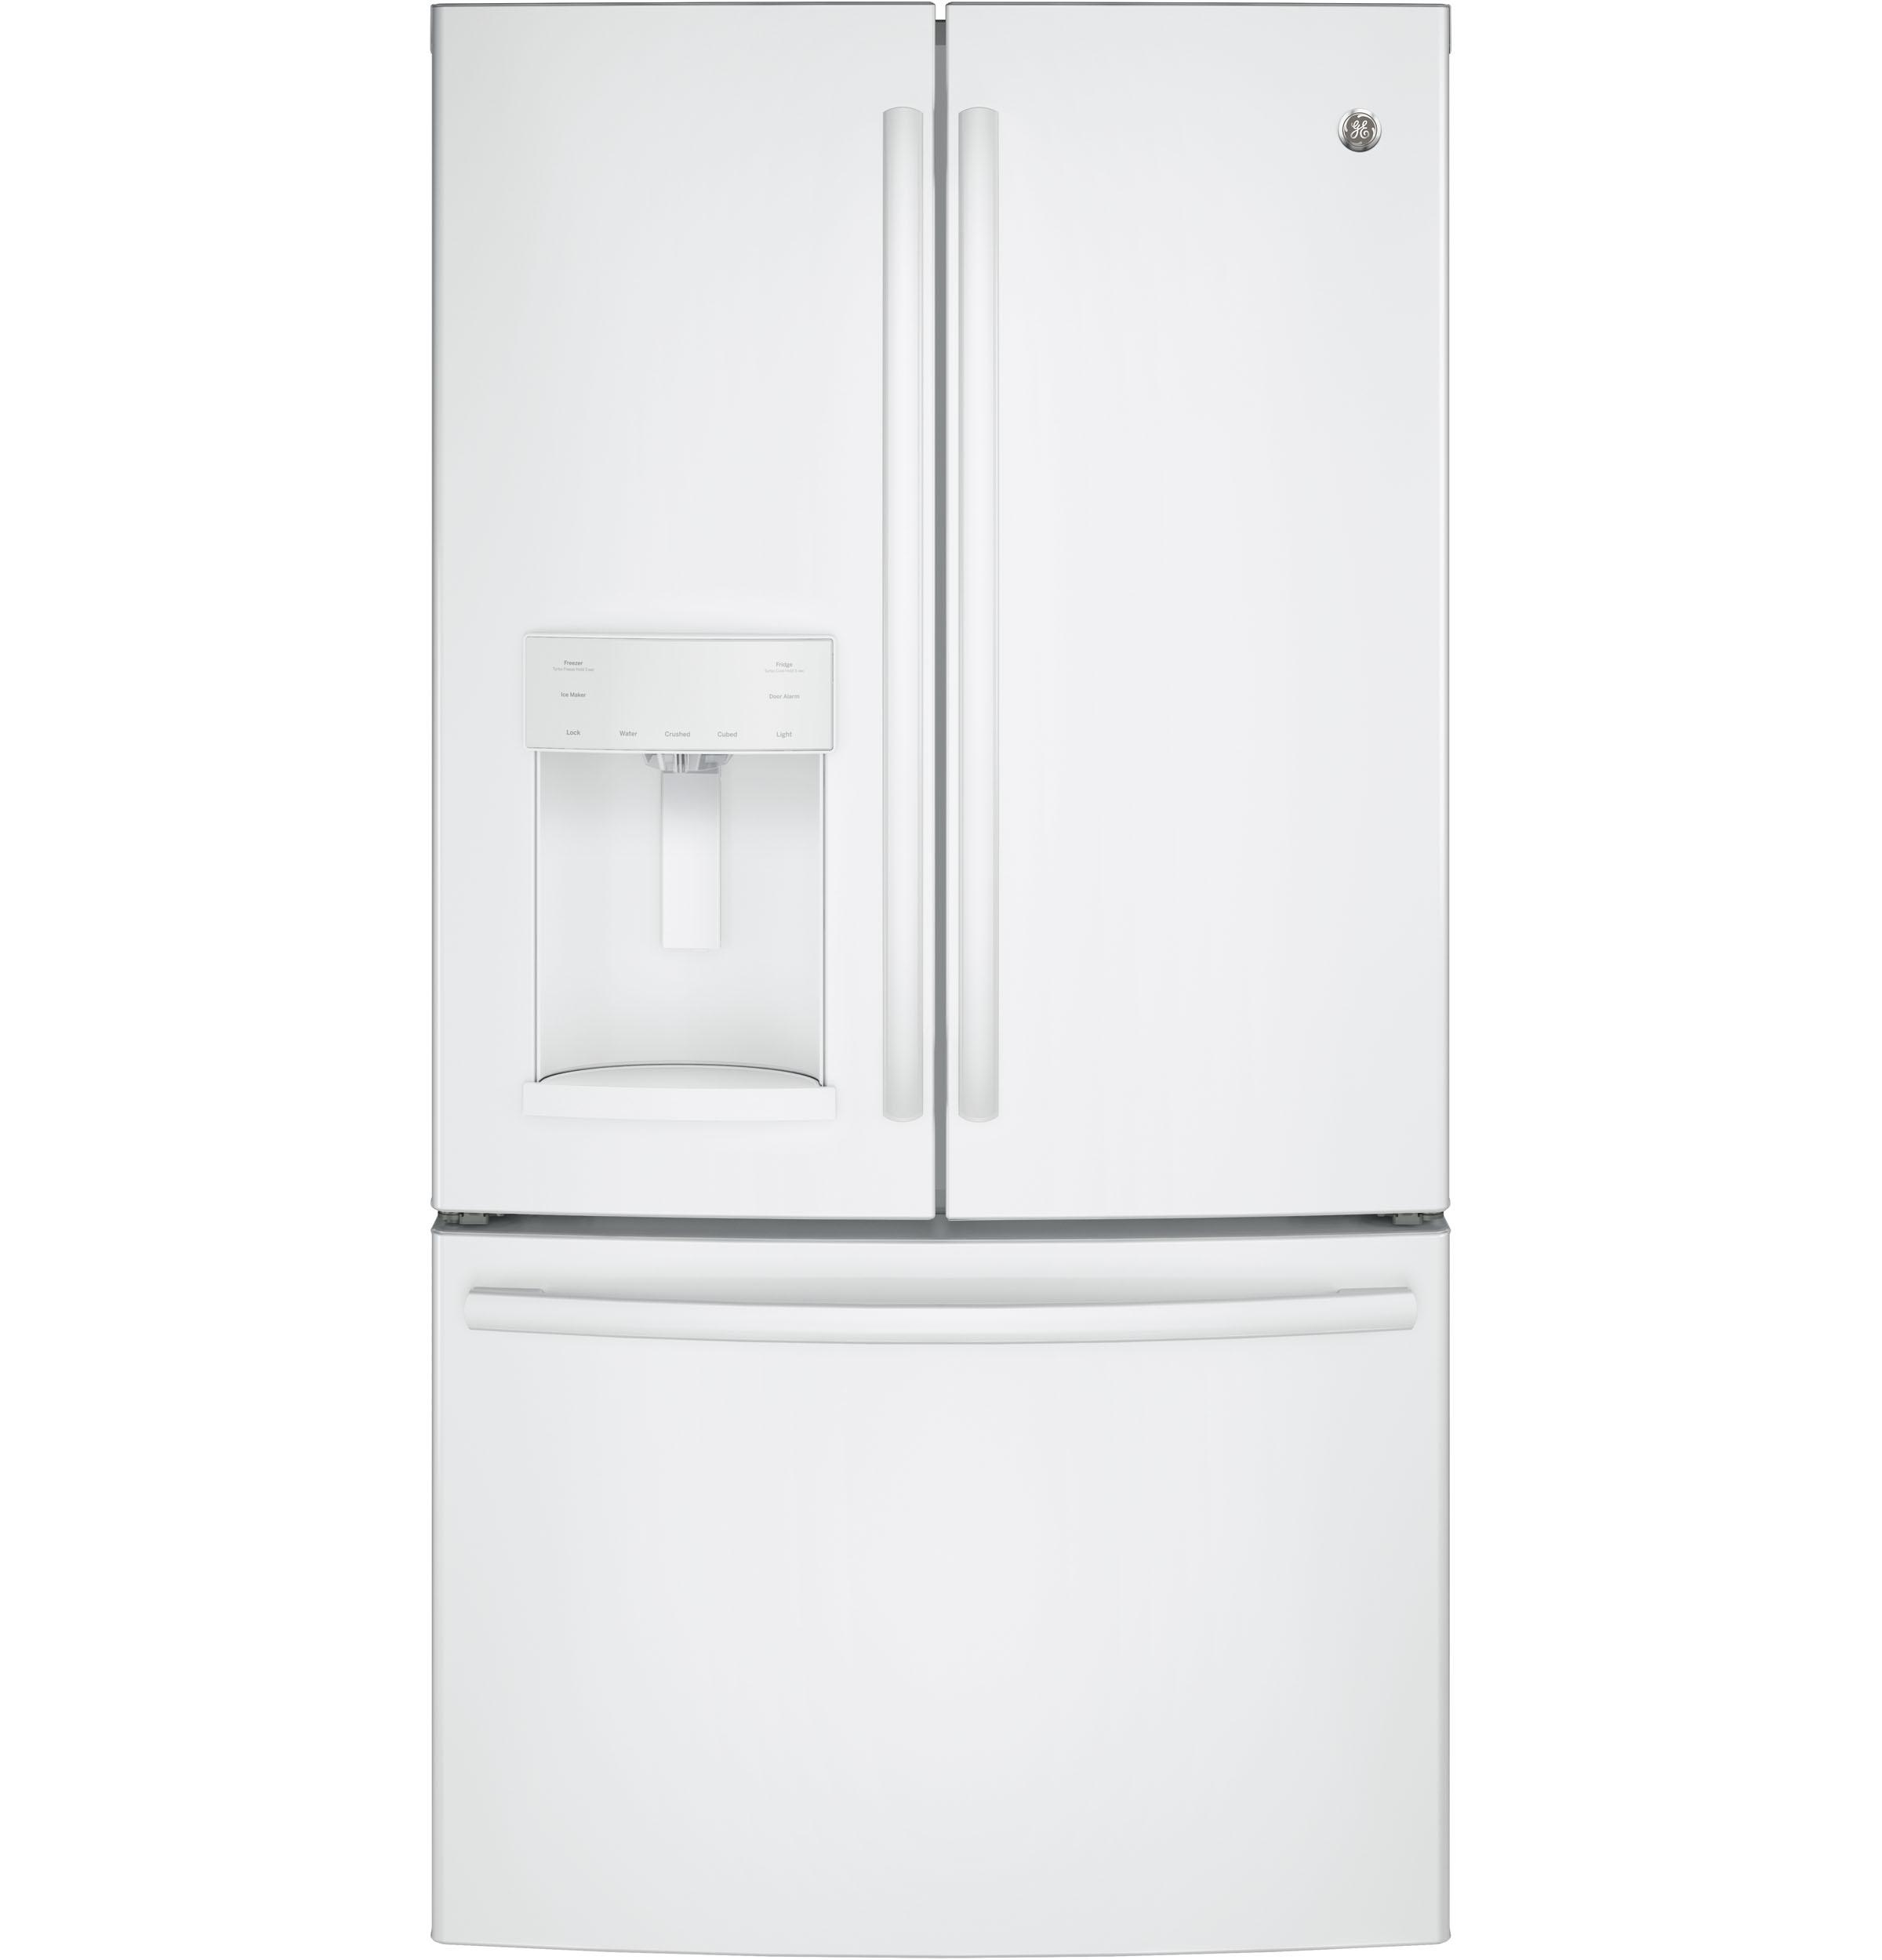 GE(R) ENERGY STAR(R) 25.8 Cu. Ft. French-Door Refrigerator